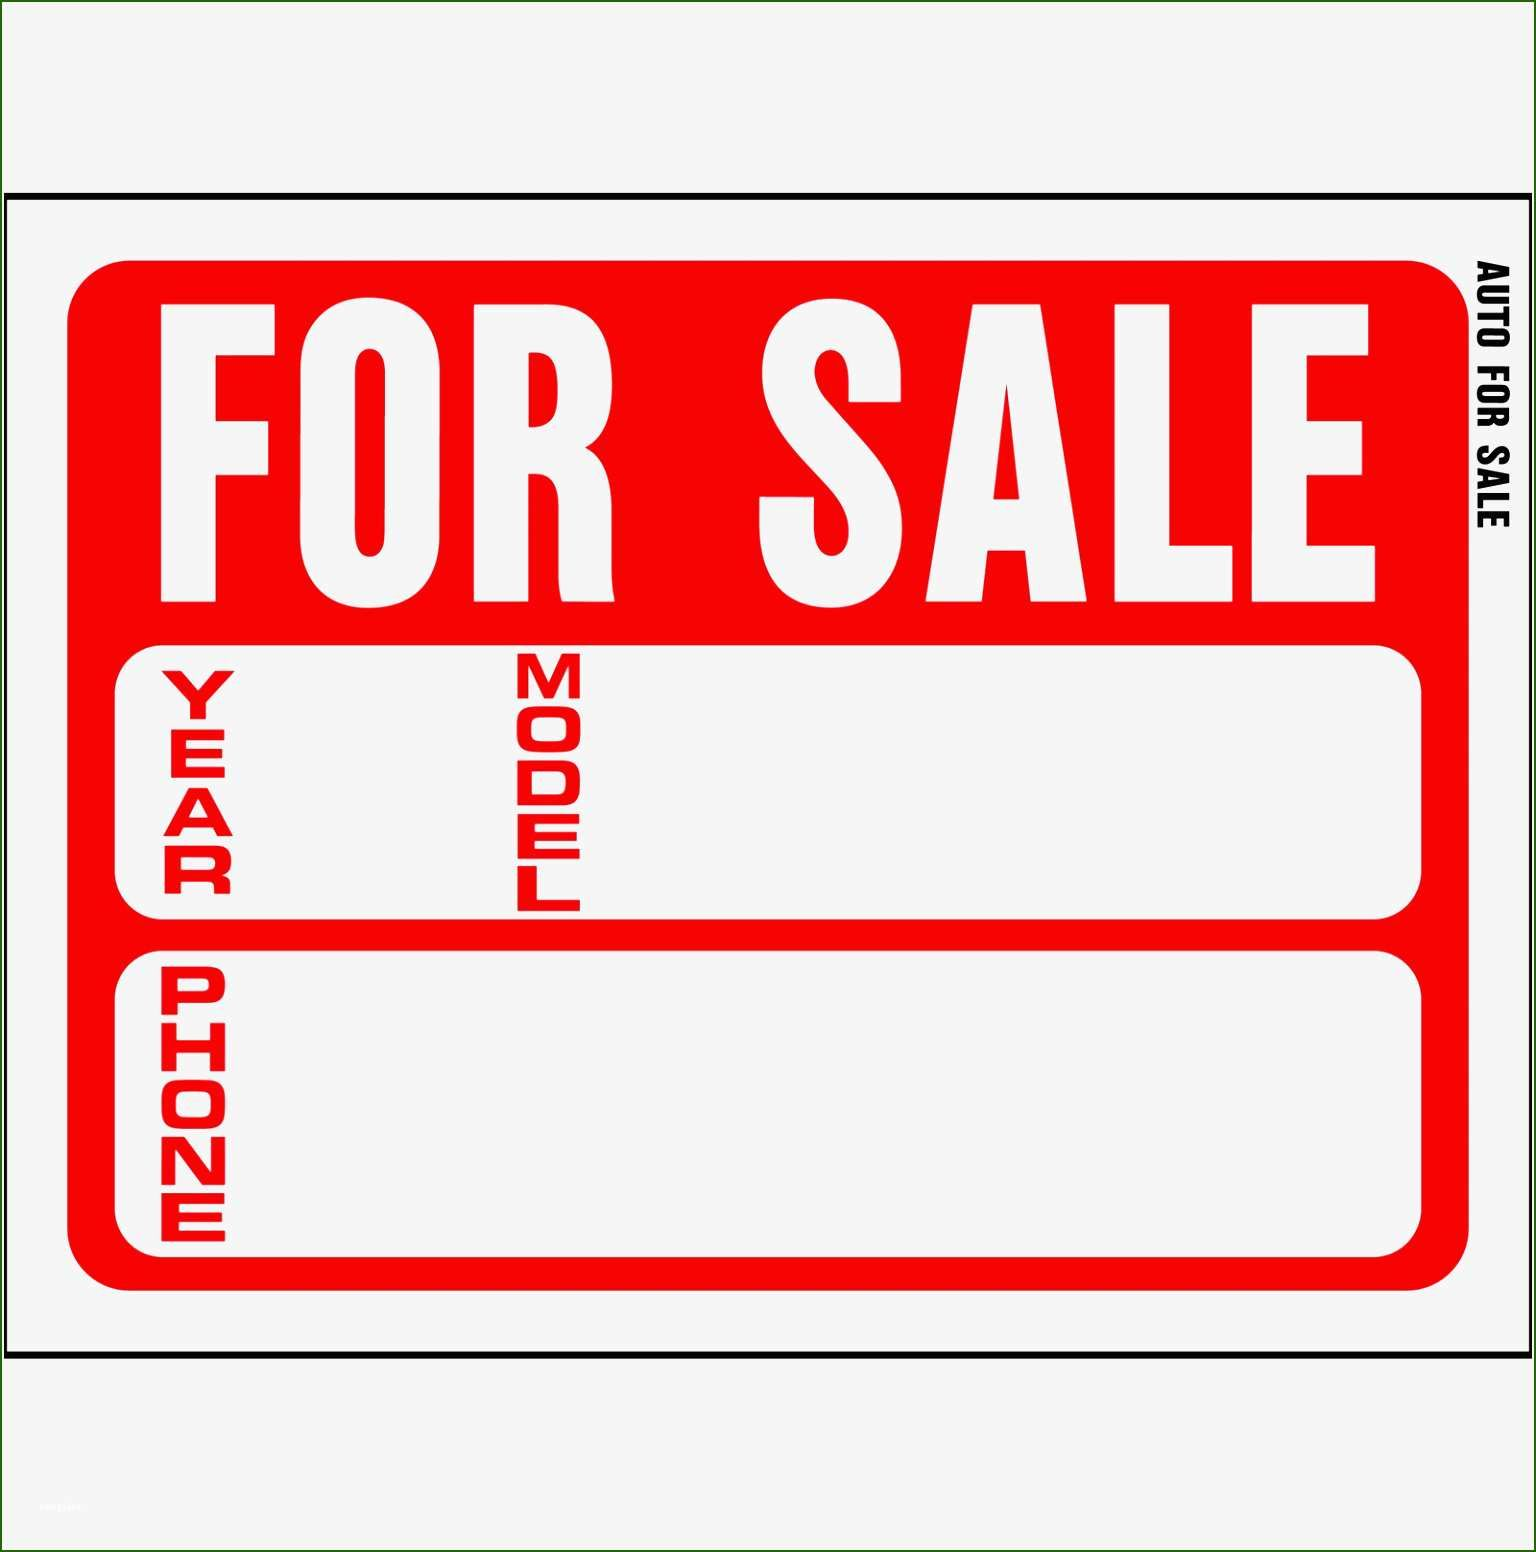 20 Great For Sale Sign Template In 2021 Sign Templates For Sale Sign Templates Car for sale sign template